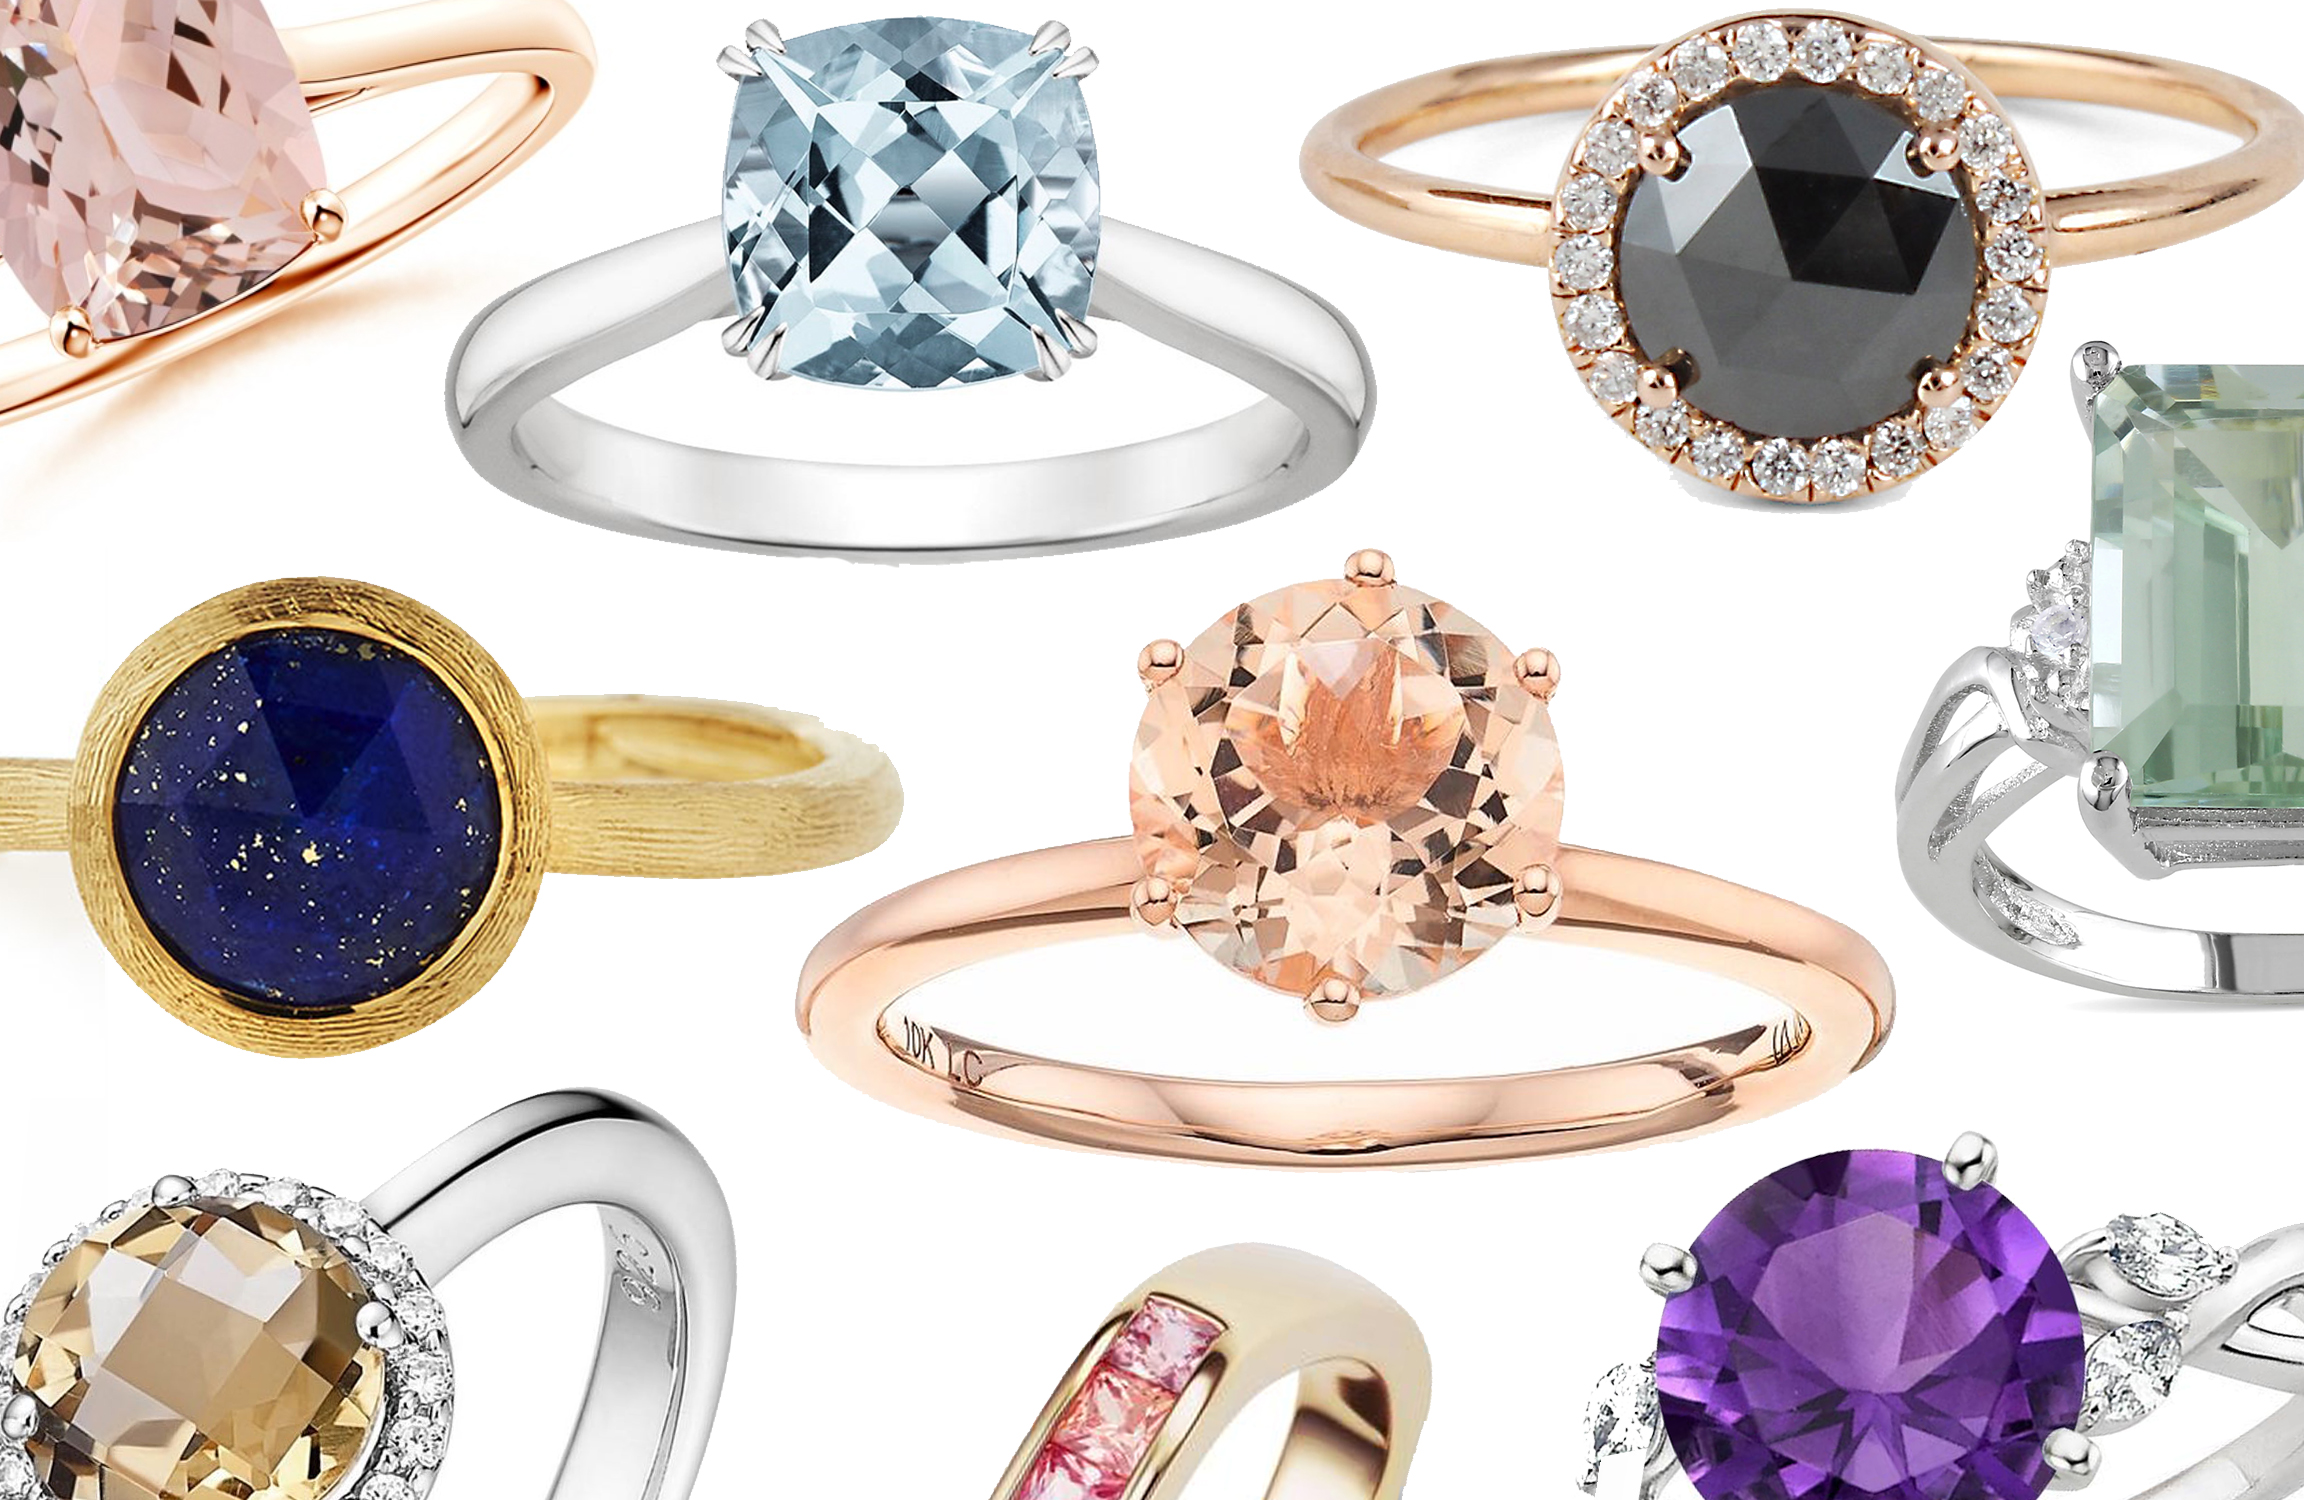 9 Non-Traditional Engagement Rings That Won't Break the Bank